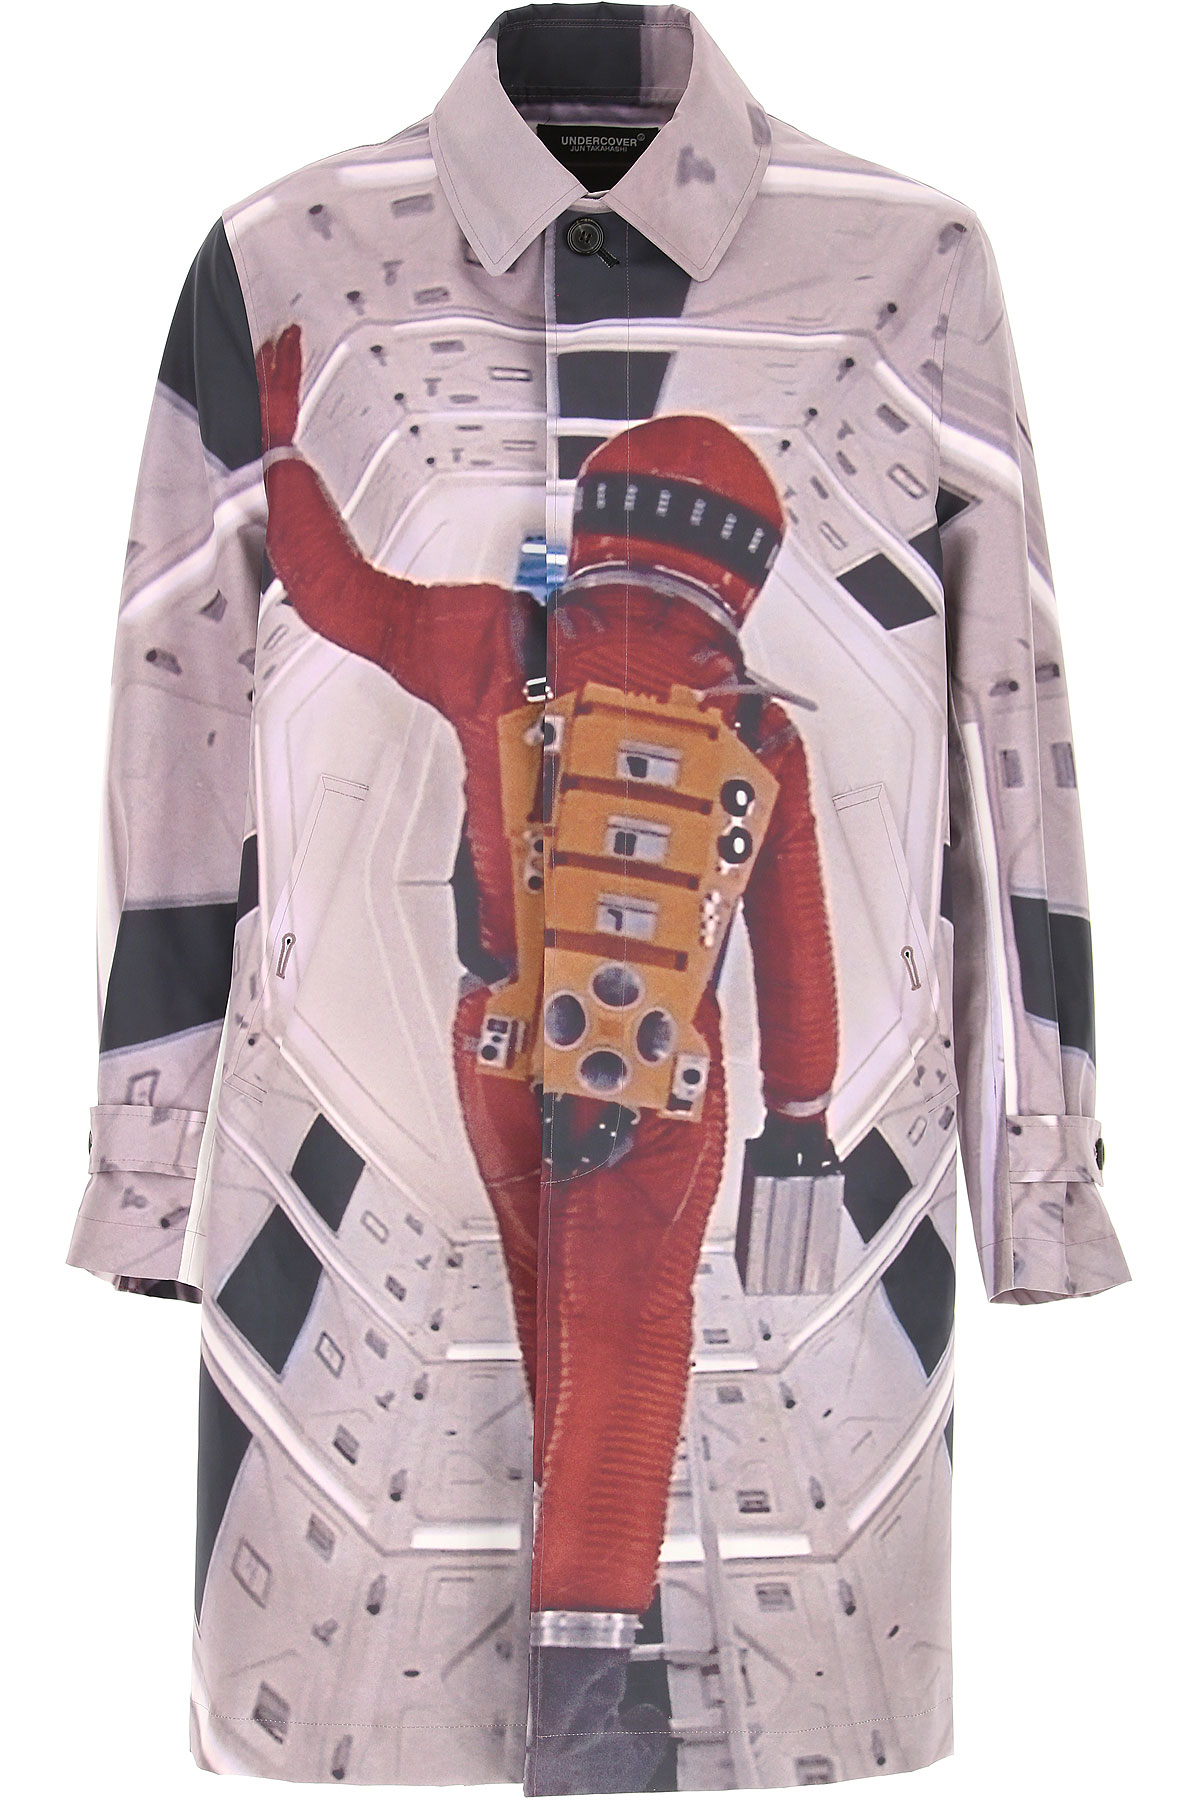 Image of Undercover Men\'s Coat, Multicolor, polyester, 2017, M S